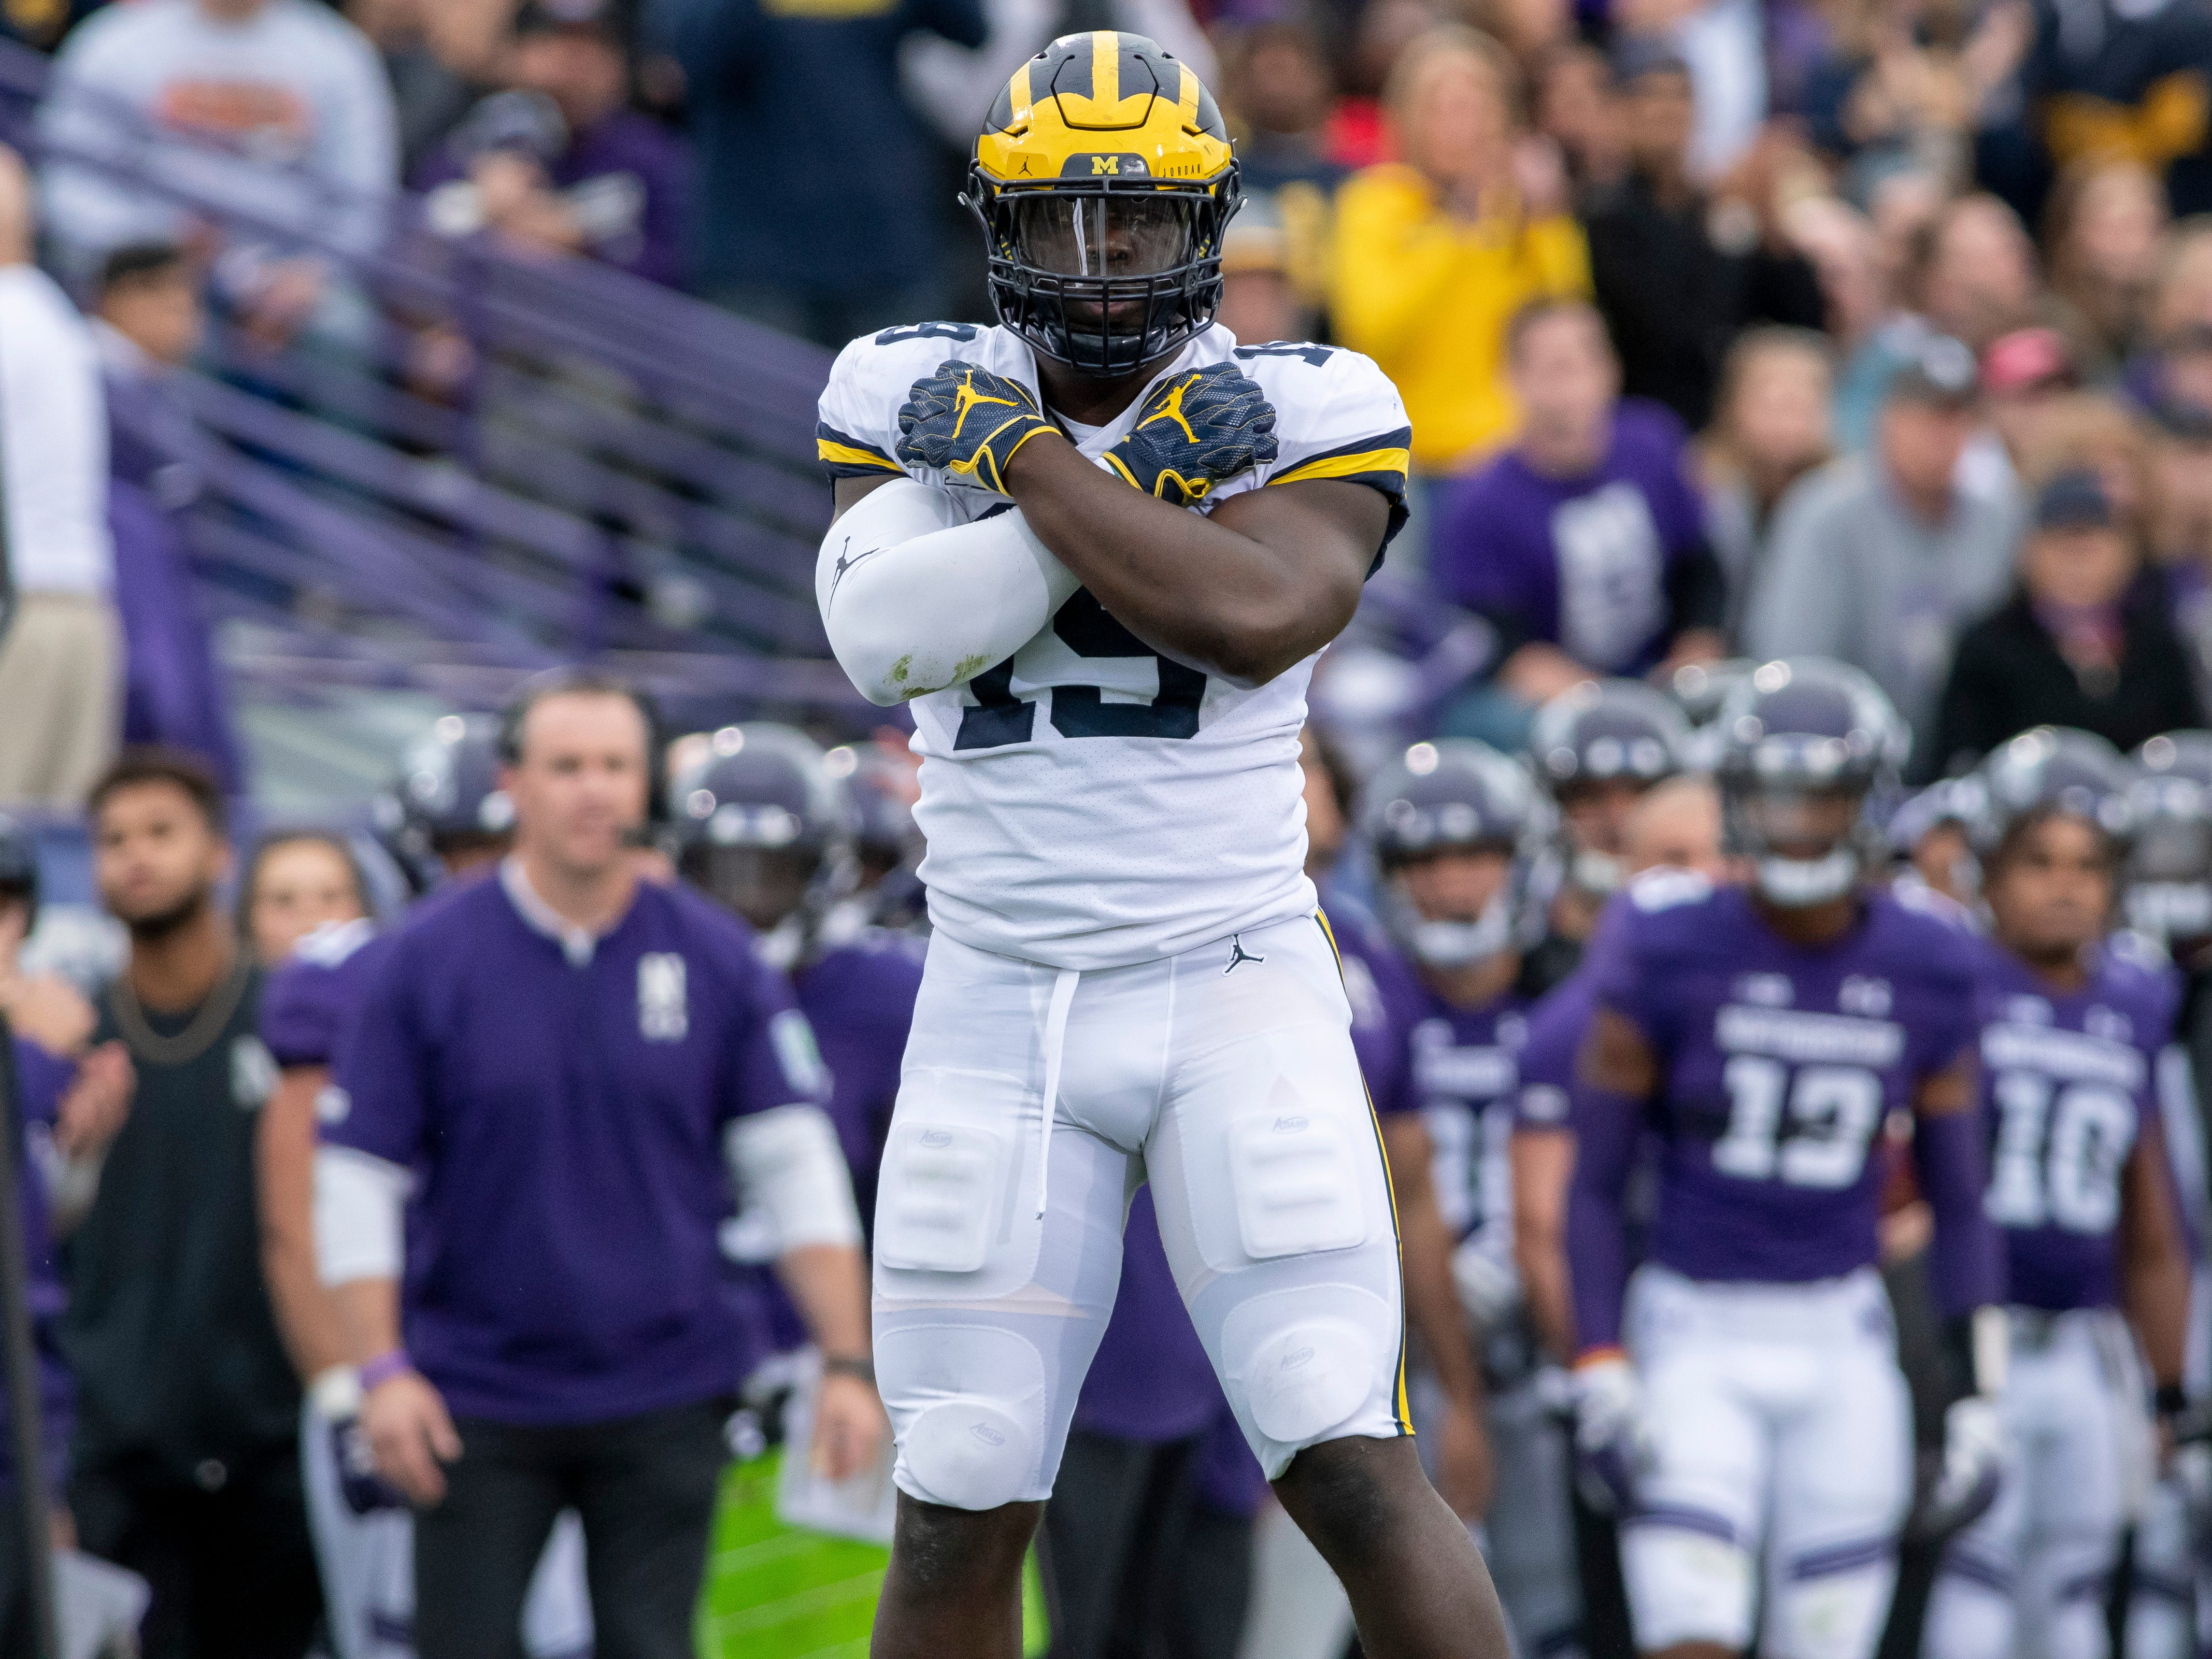 DEFENSE DEFENSIVE END: Kwity Paye – Paye essentially had an audition while Rashan Gary was out with a shoulder injury and he impressed pretty much everyone, including defensive coordinator Don Brown. Paye finished with 29 tackles, two sacks and 5.5 tackles for loss.